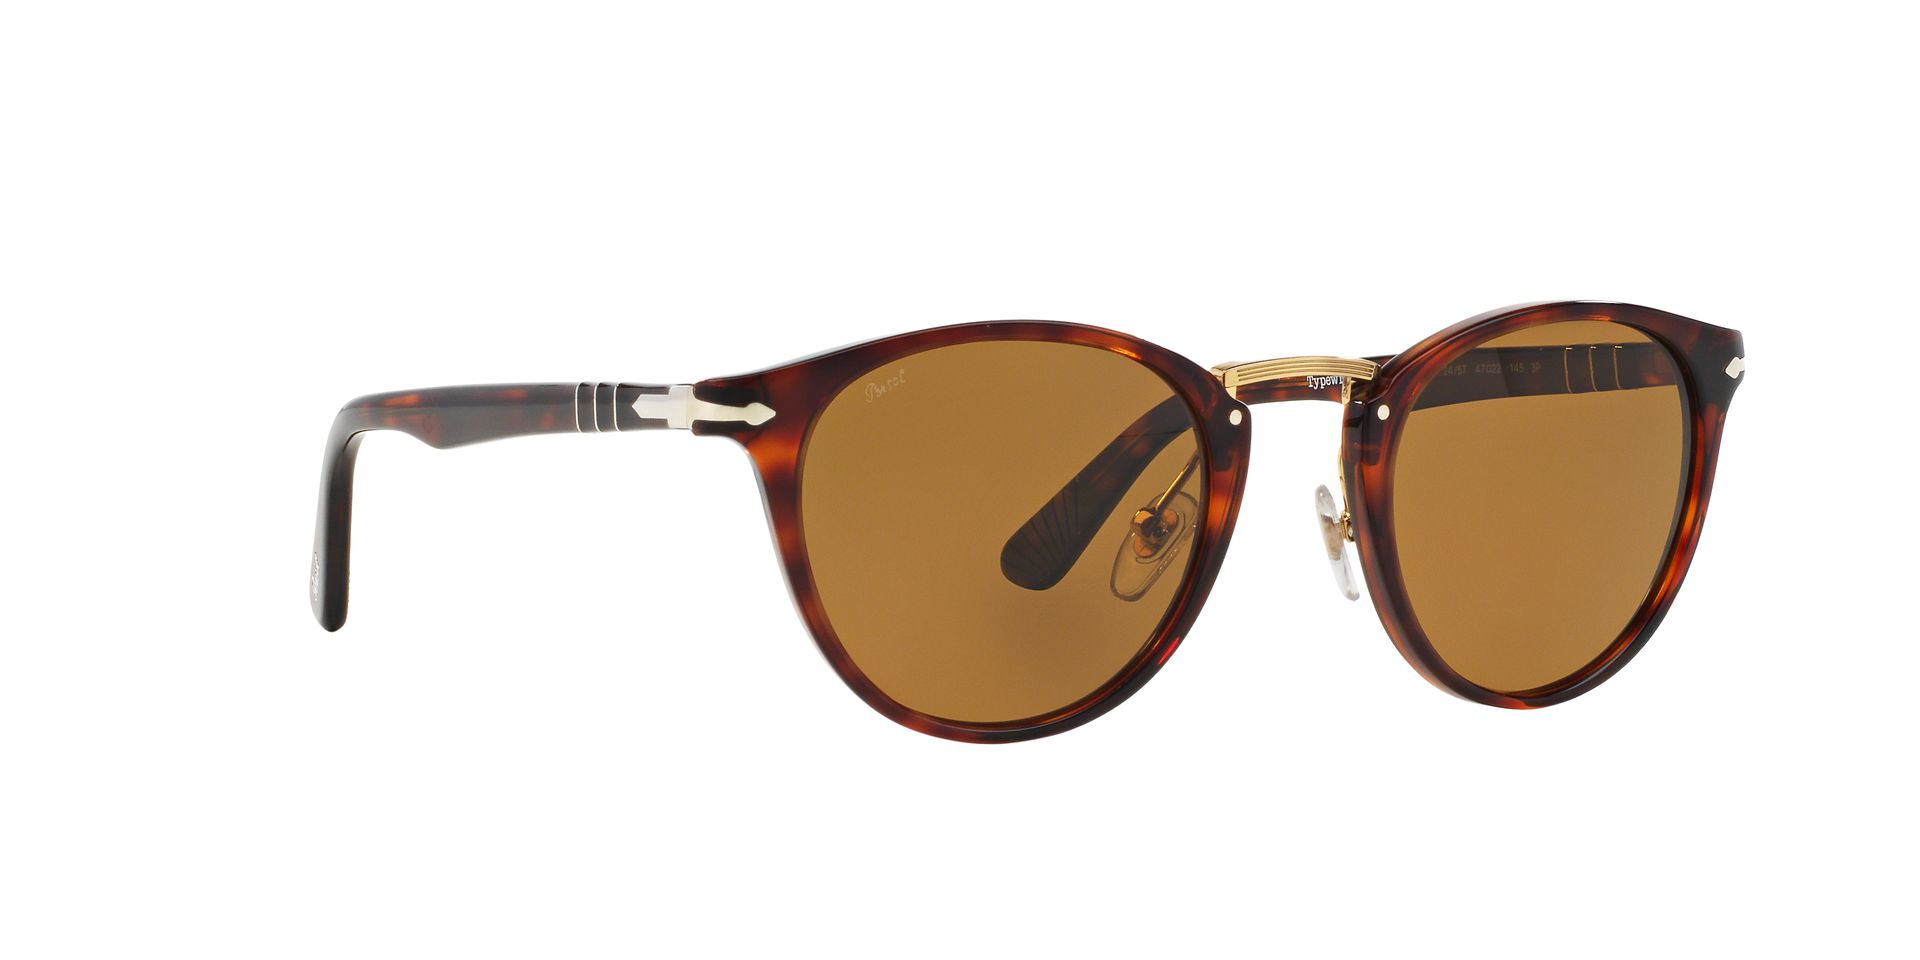 821e41c577 Brillenchic-onlineshop in Berlin - Persol PO 3108S 3108 24 57 ...